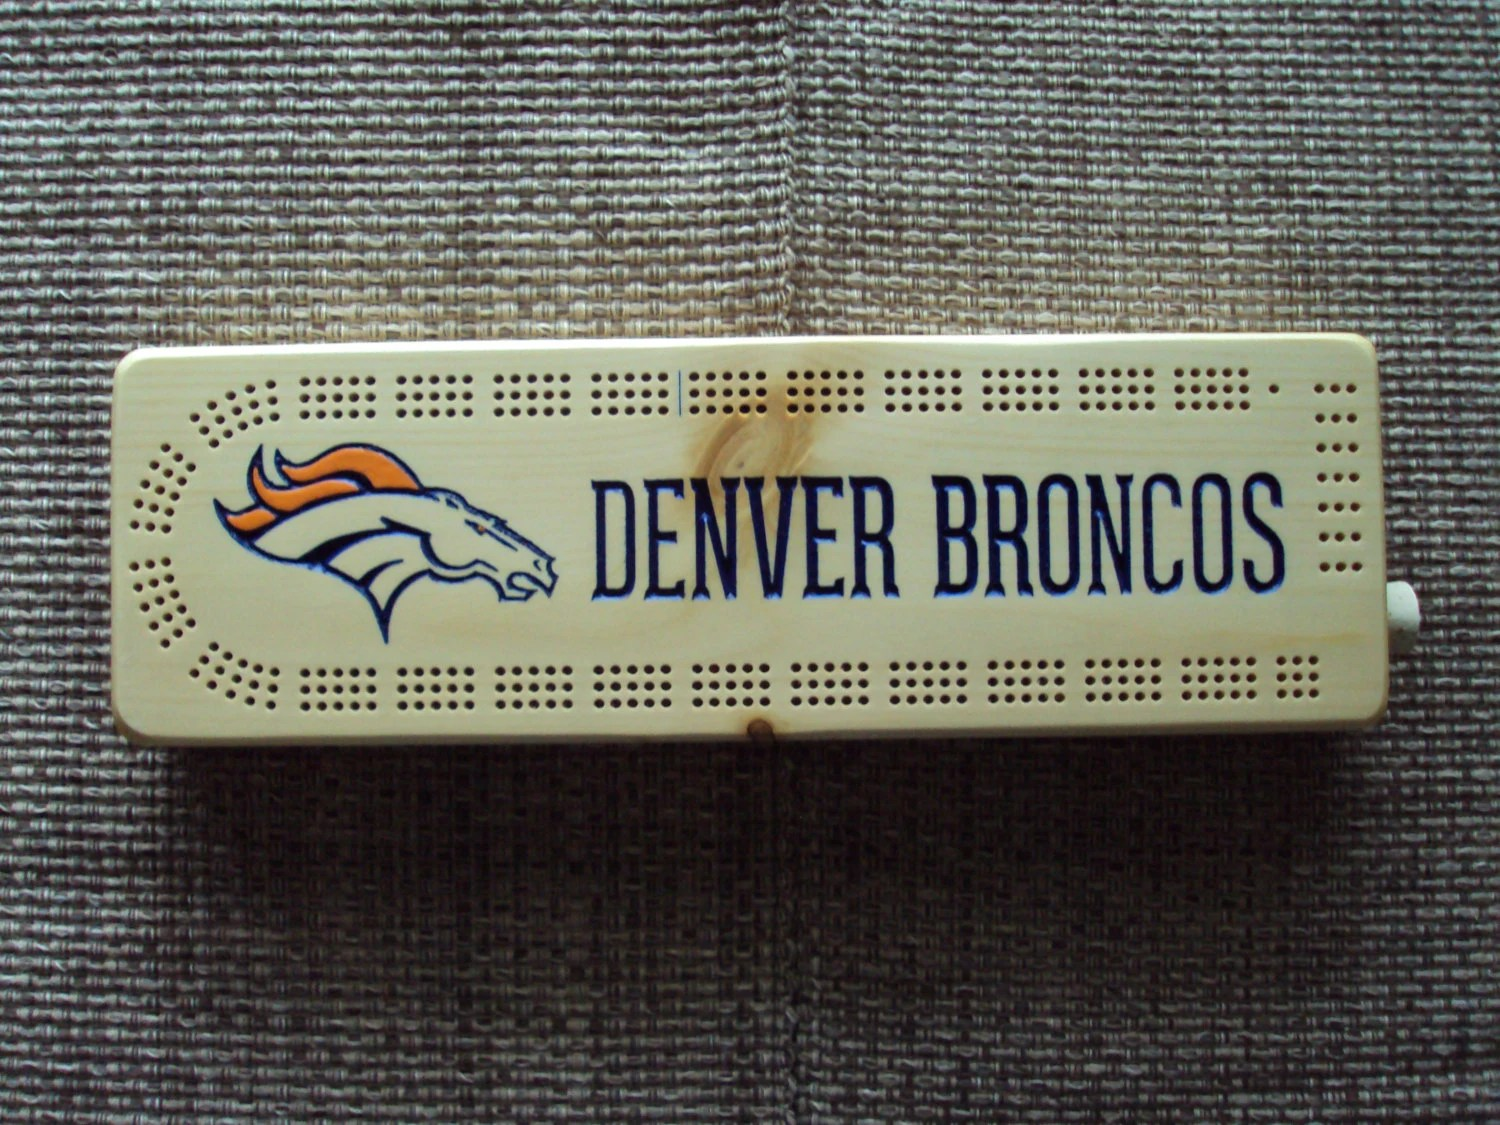 Denver Broncos Chair Rustic Cribbage Board Denver Broncos Football Furniture